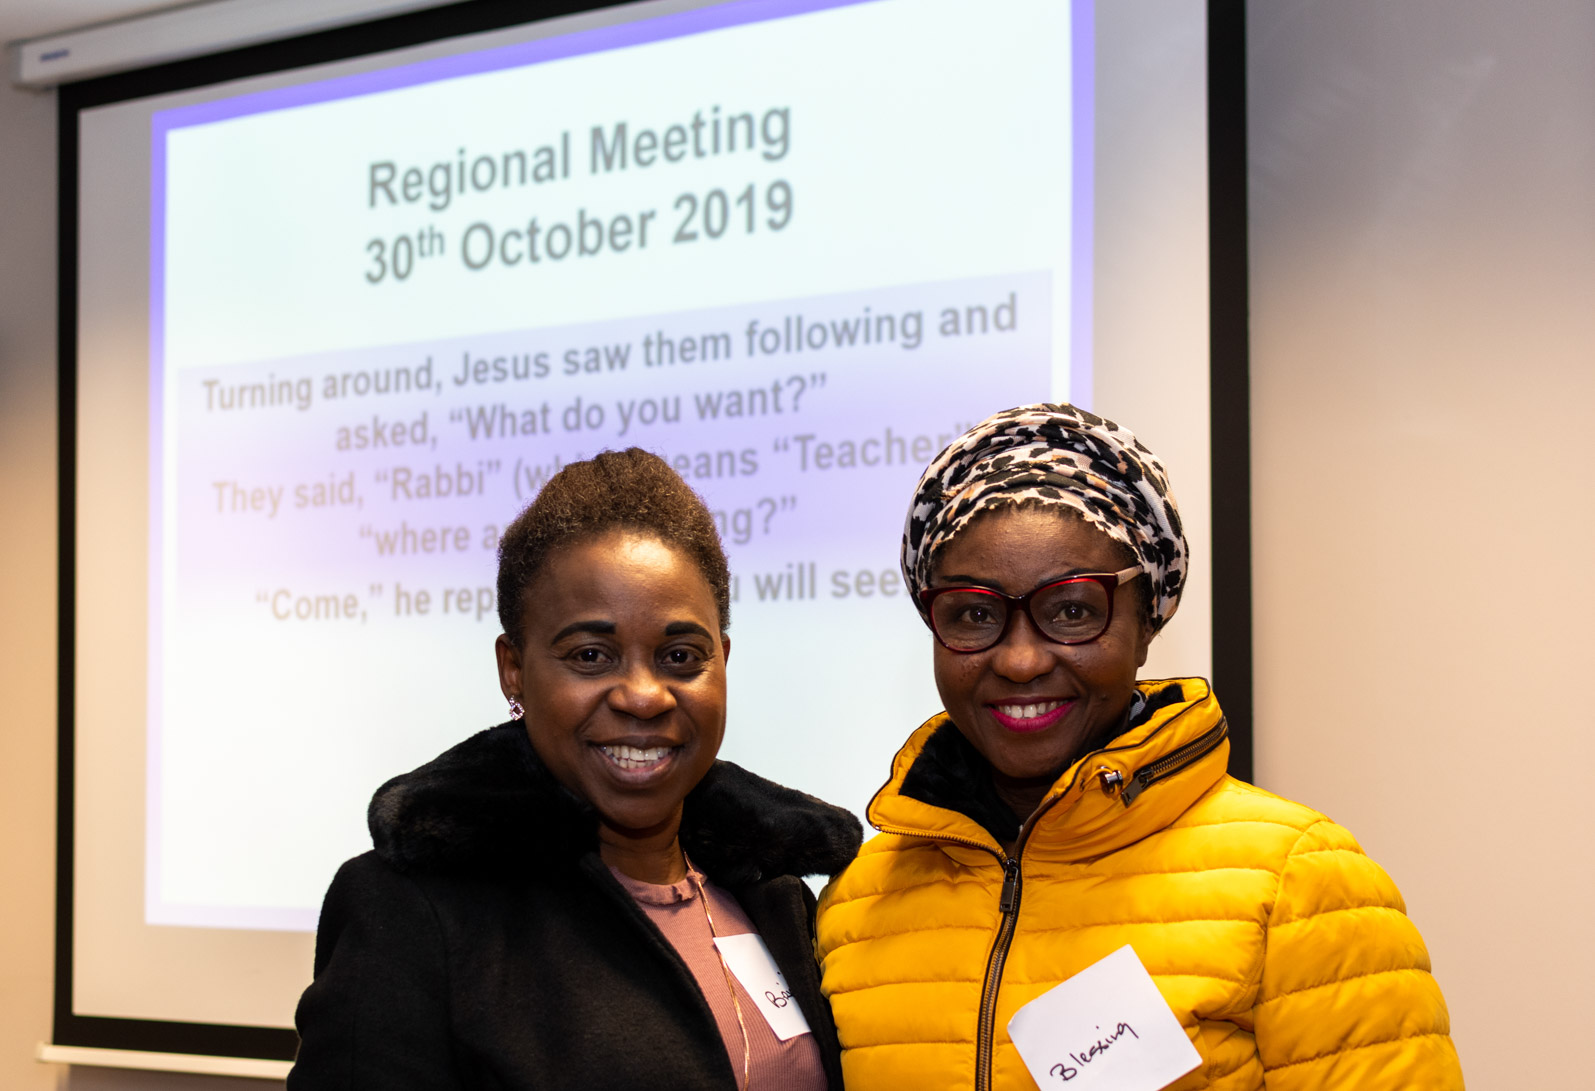 Two ladies smiling for a photo at the Augustinian Lay Forum Regional meeting in Dublin.